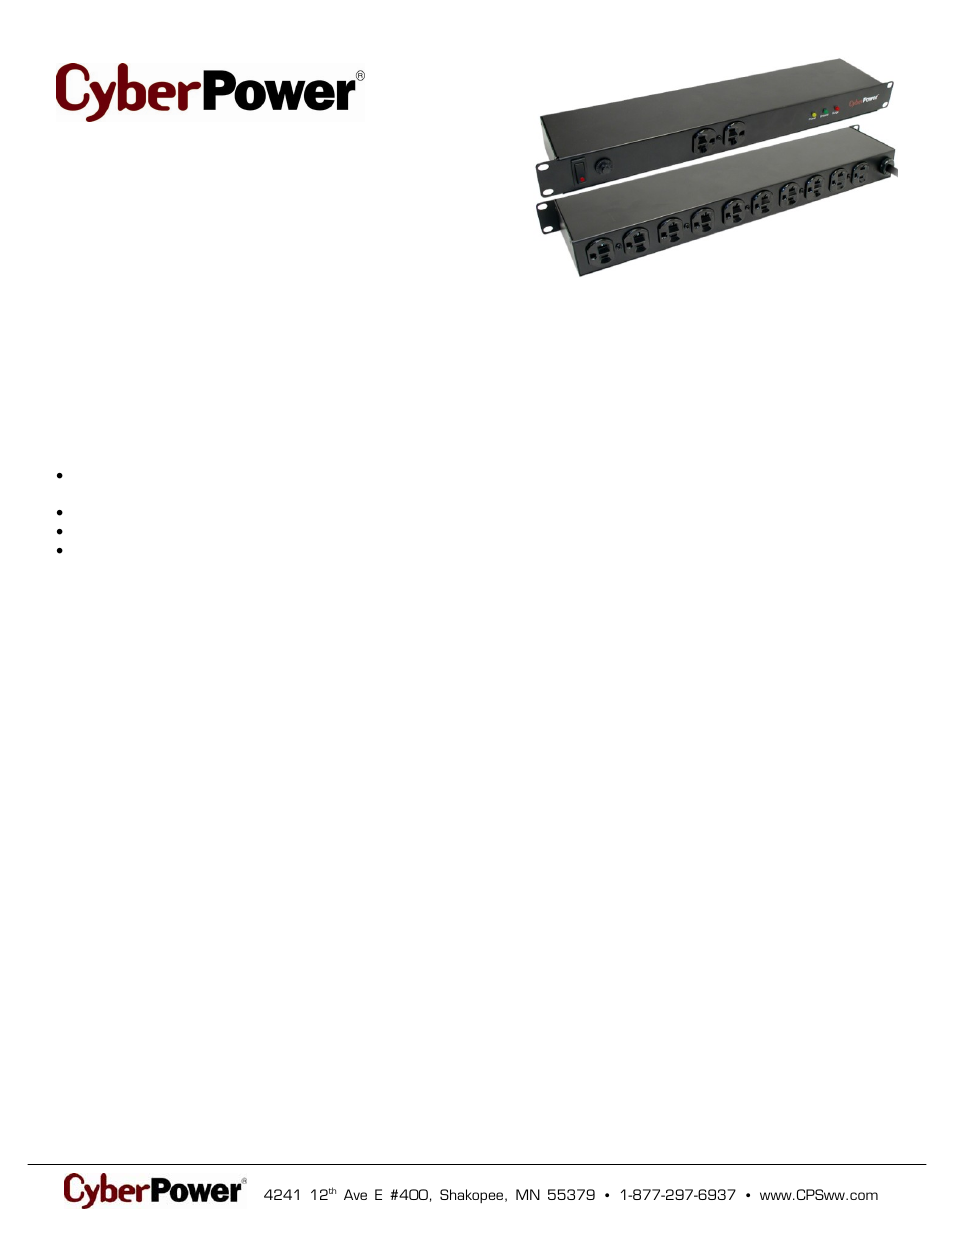 CyberPower CPS1220RMS User Manual | 2 pages